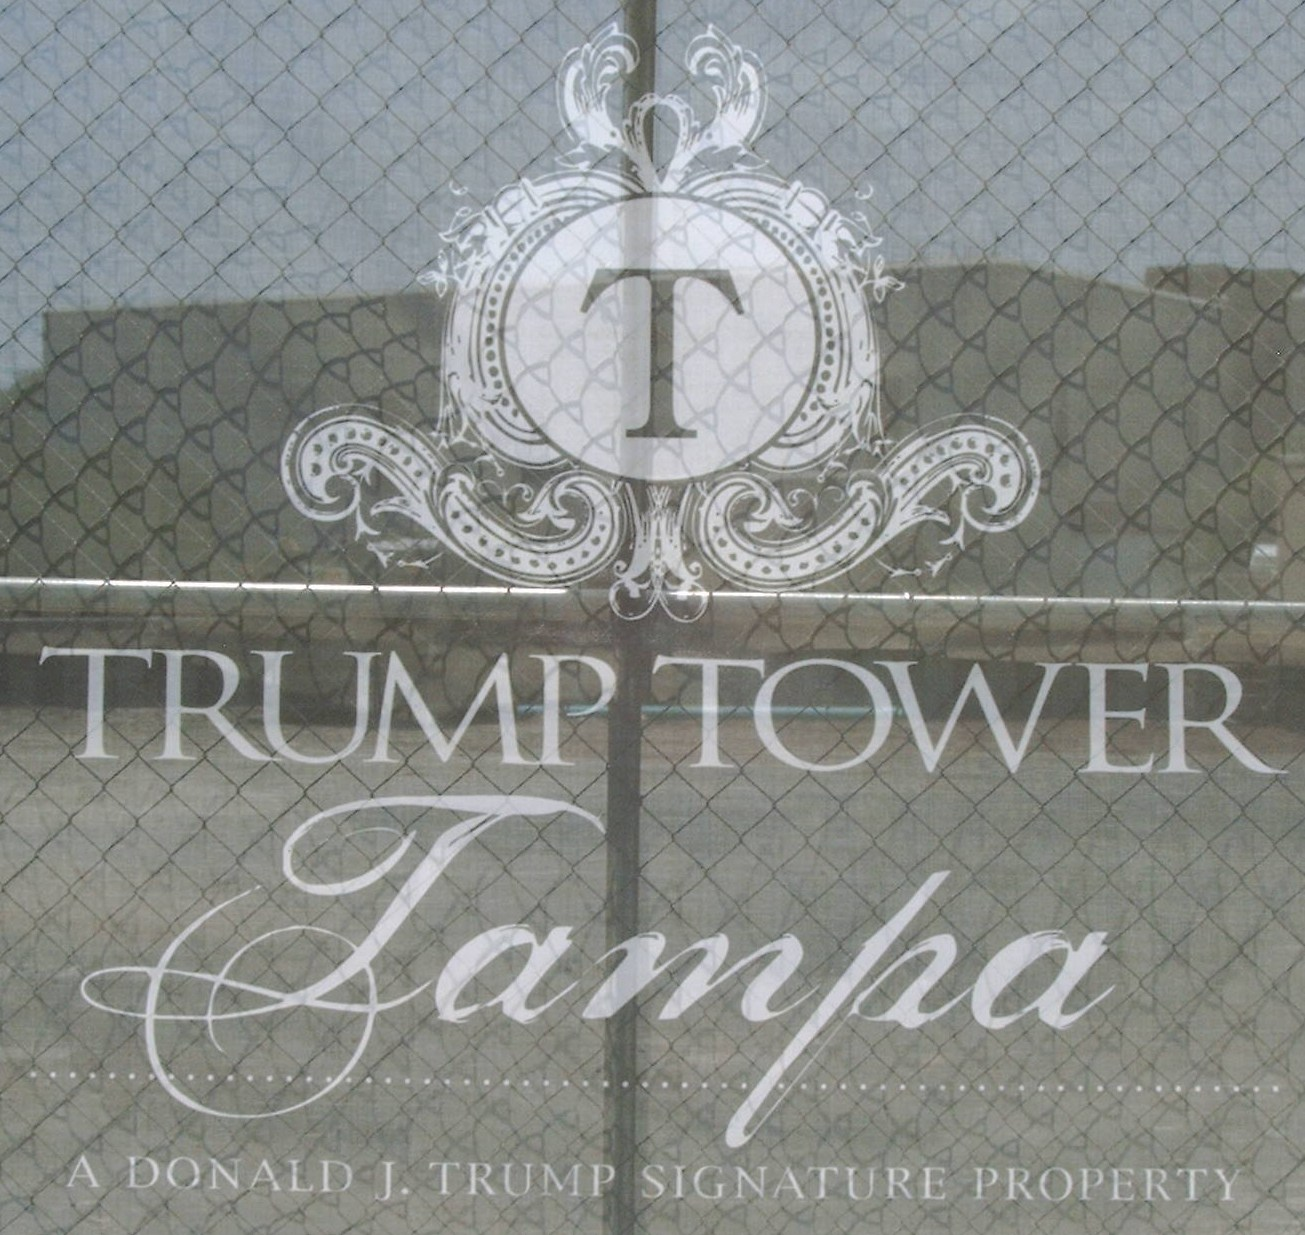 Trump Tower Tampa sign